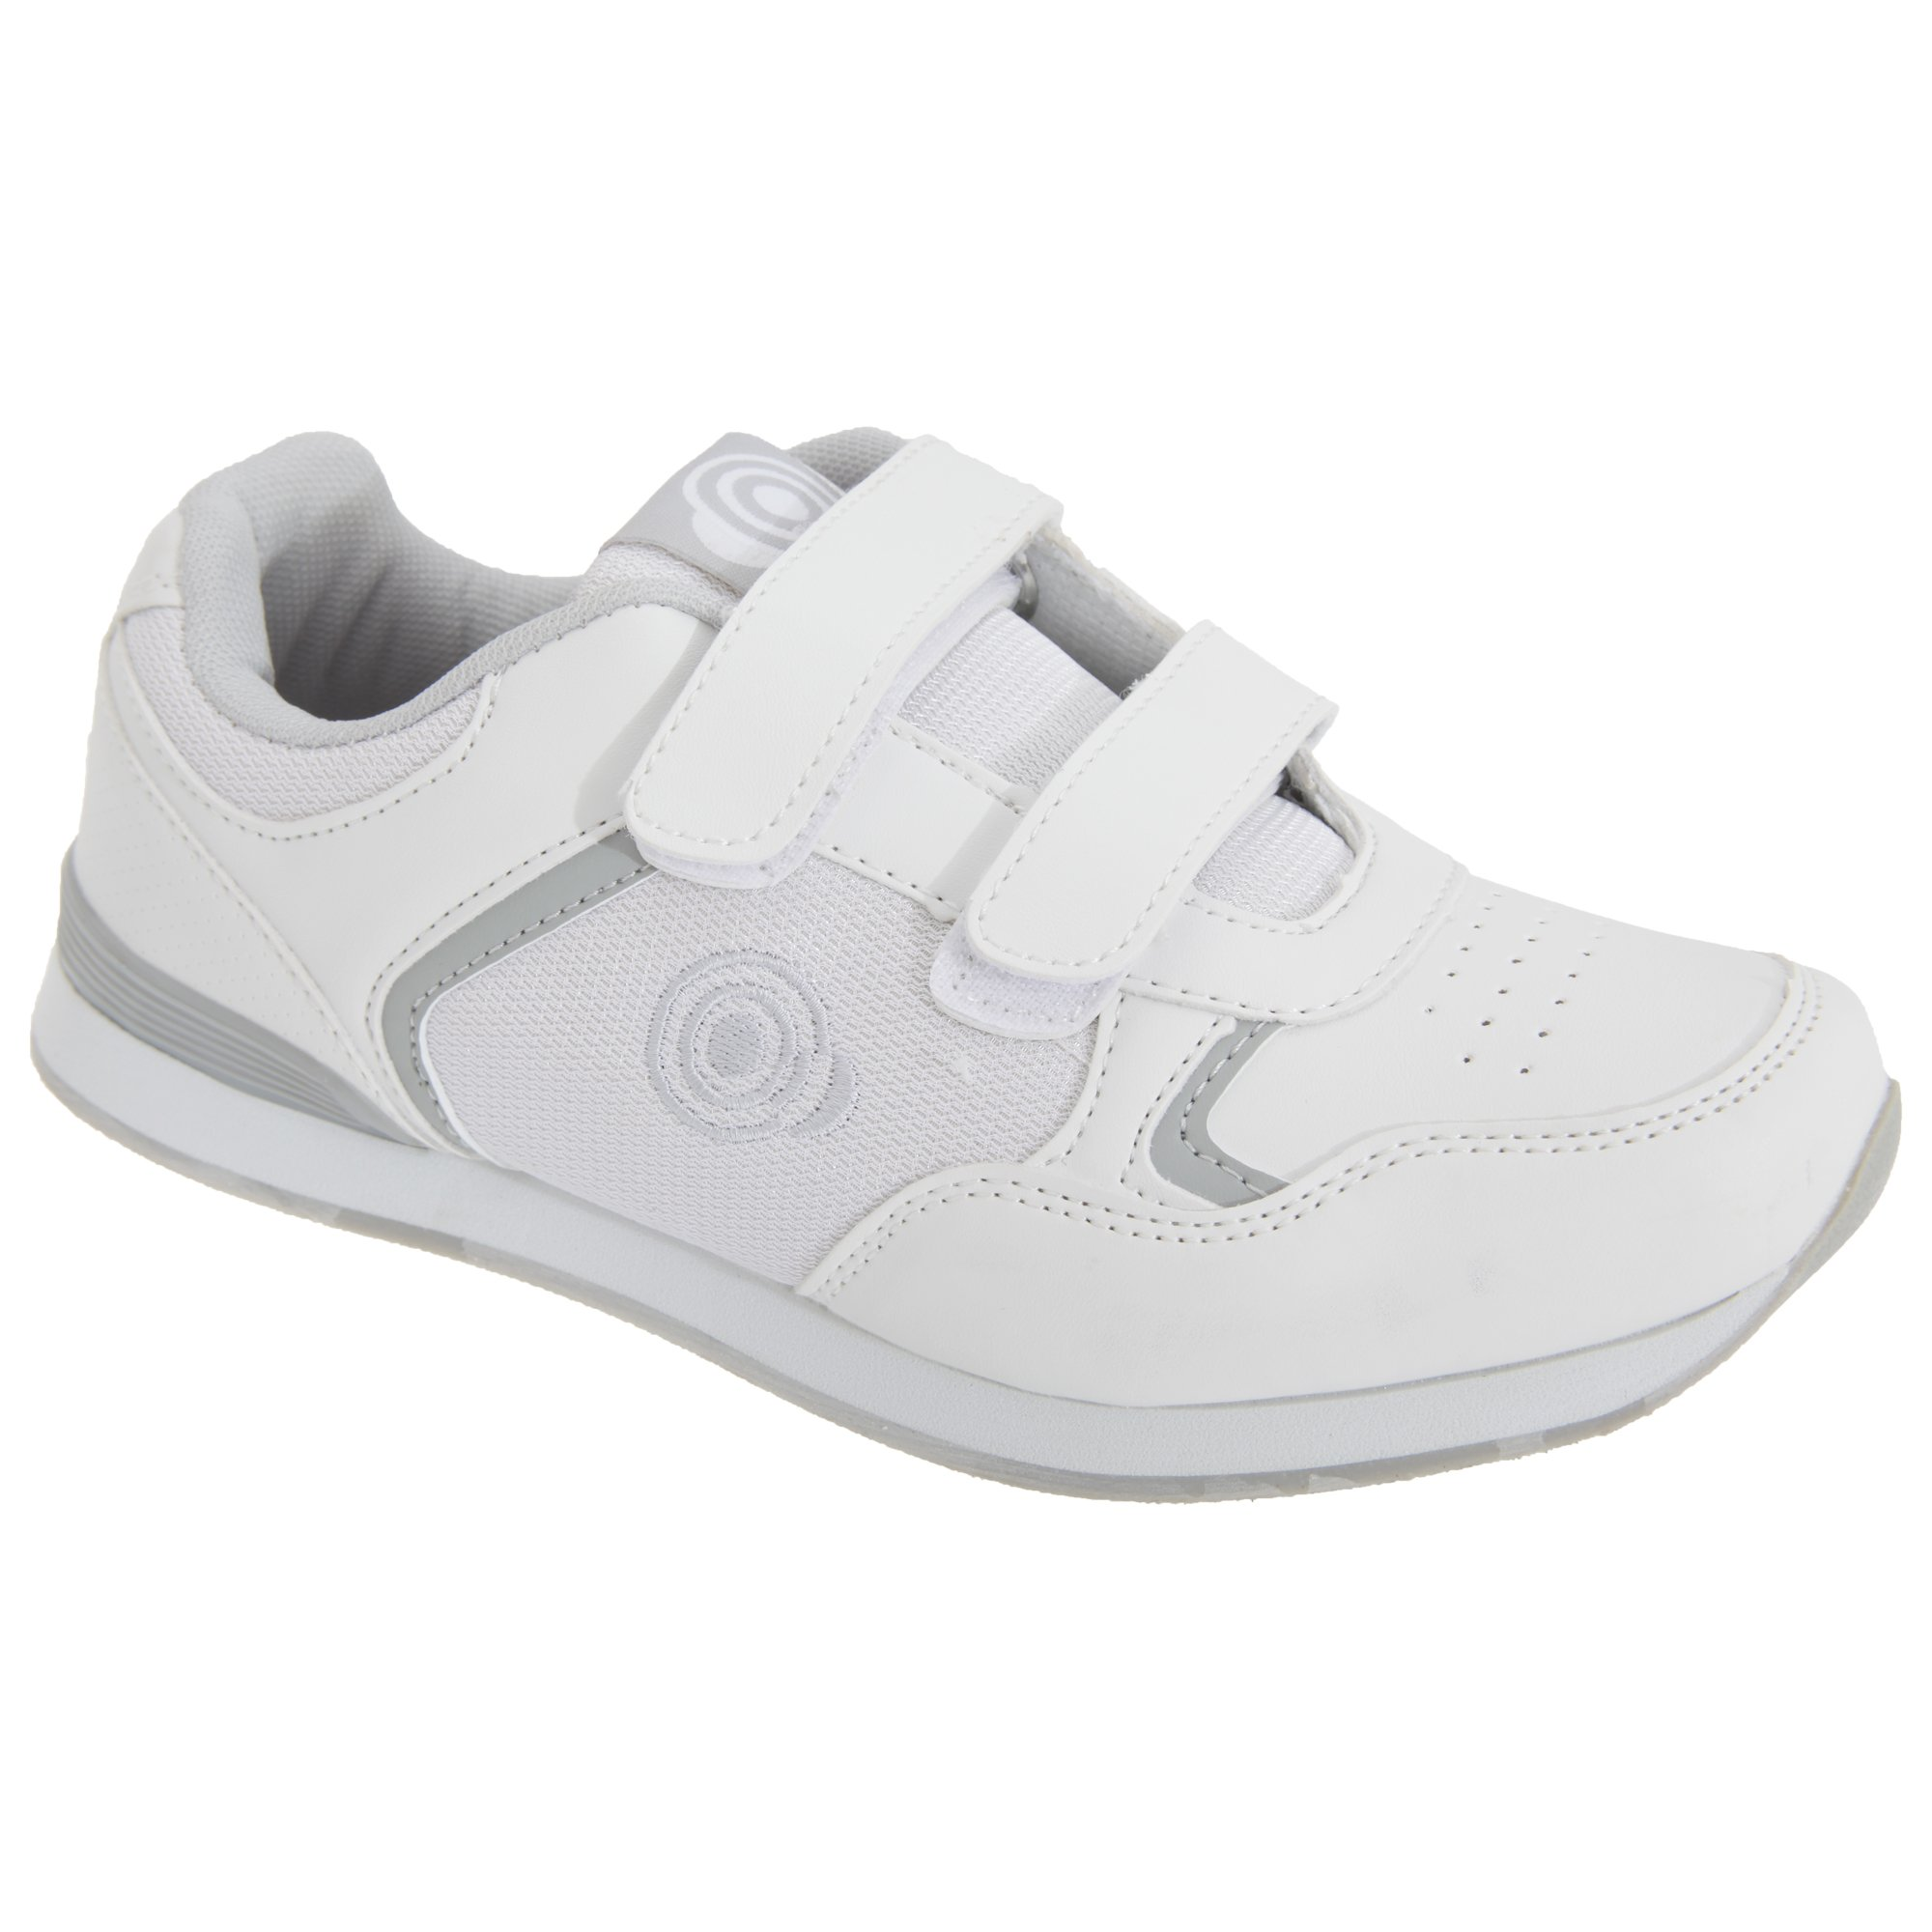 Dek Womens/Ladies Lady Skipper Touch Fastening Trainer-Style Bowling Shoes (9 US) (White)